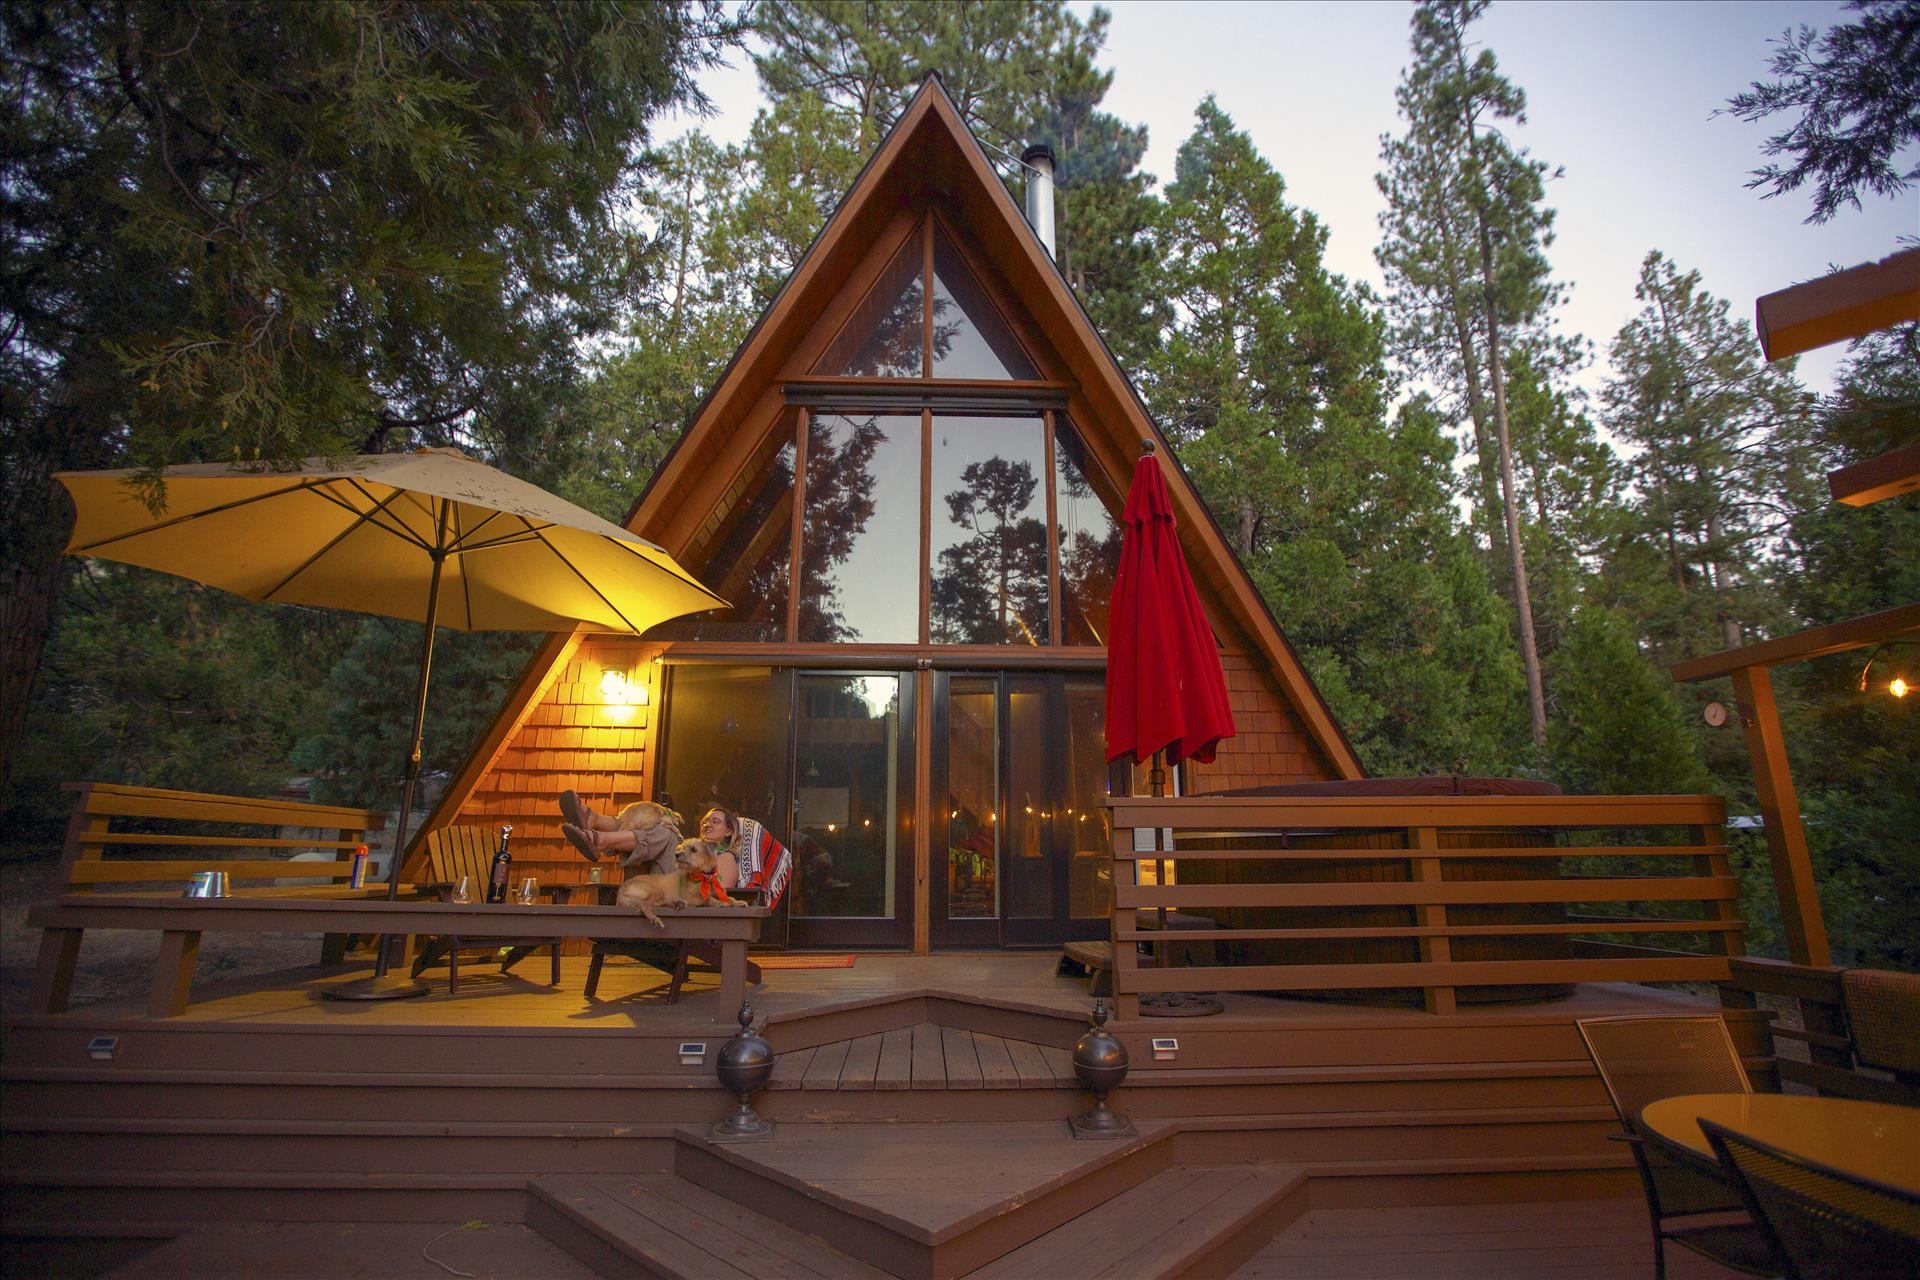 Idyllcove A Frame Cabin Vacation Rental Cabins In